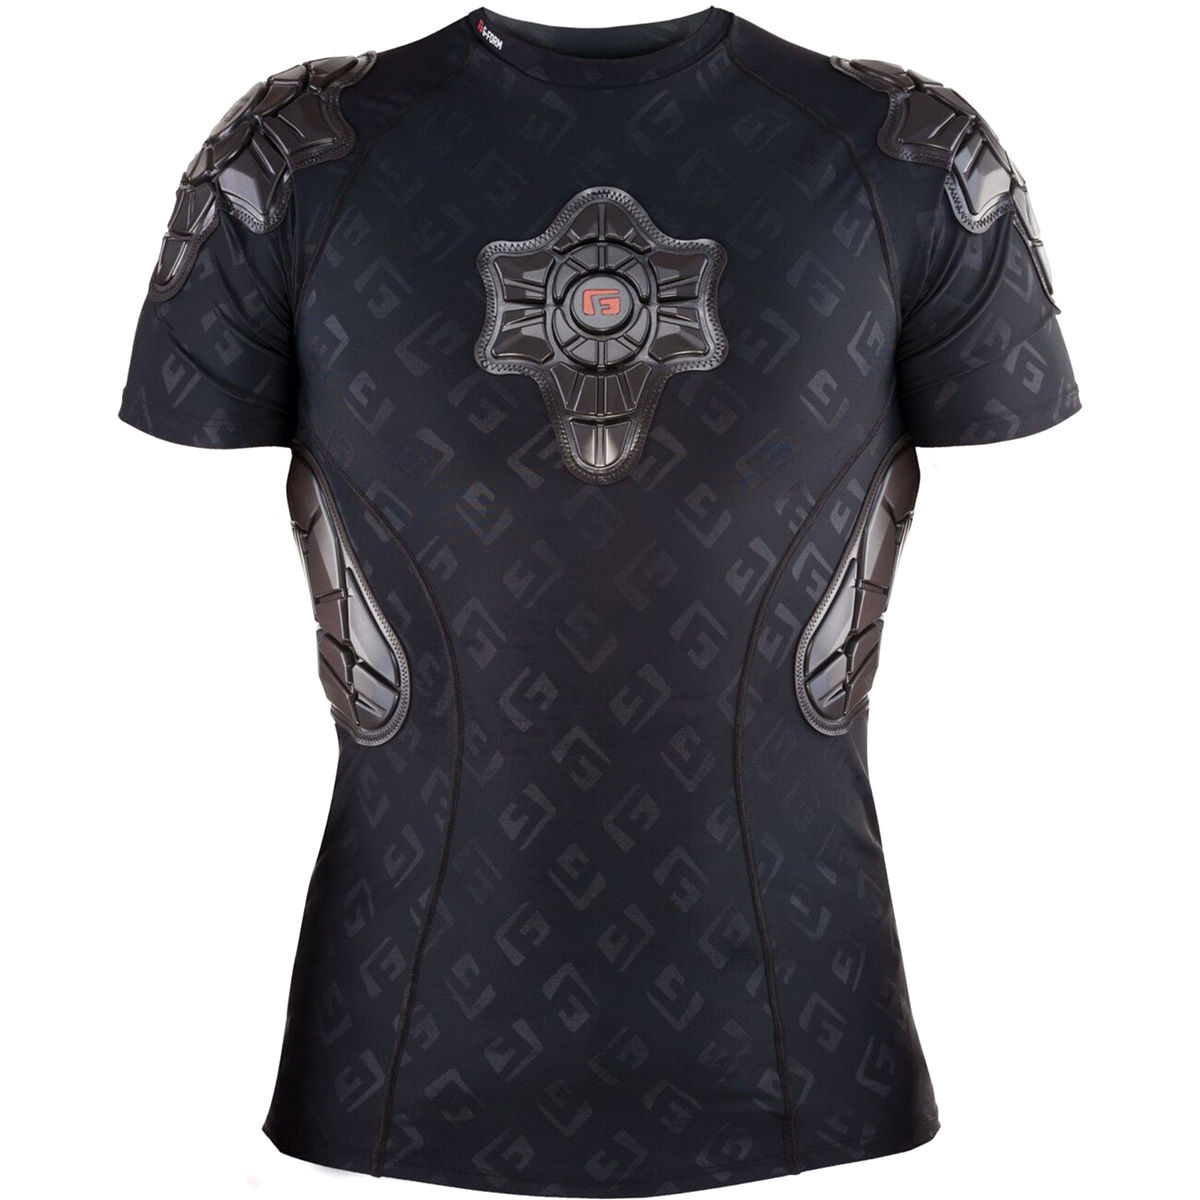 G-Form G-Form Youth Pro-X SS Shirt   Body Protectors